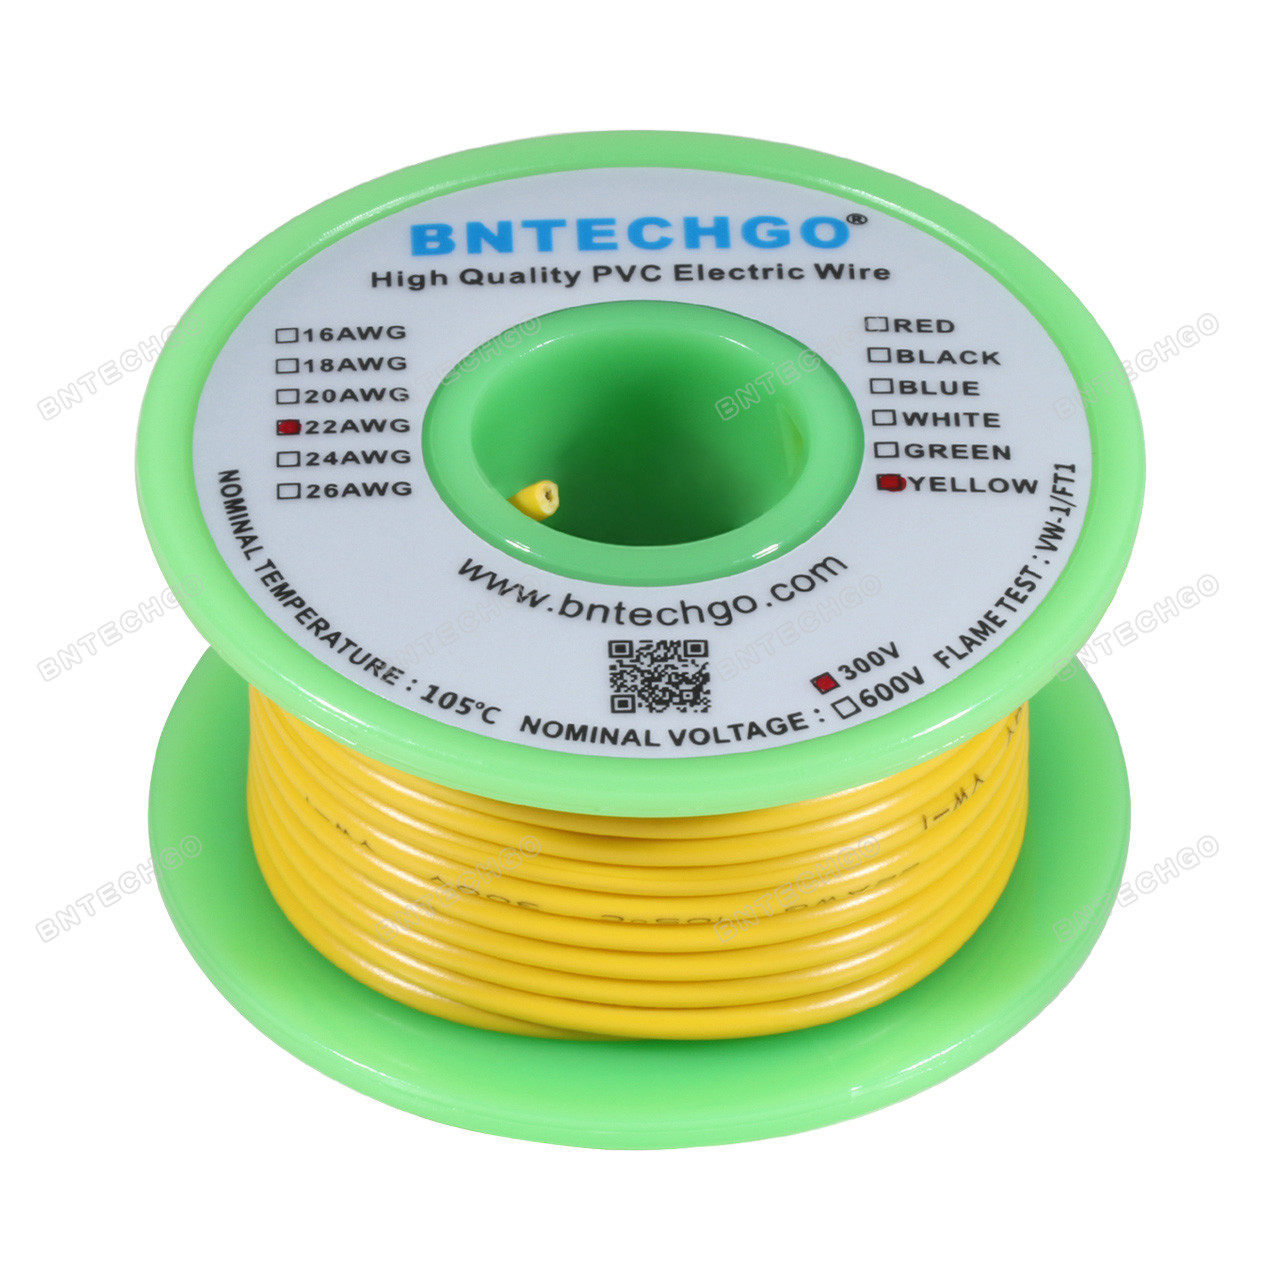 BNTECHGO 26 AWG 1007 Electric Wire 26 Gauge PVC 1007 Wire Stranded Wire Hook Up Wire 300V Stranded Tinned Copper Wire Black 100 ft Per Reel for DIY bntechgo.com